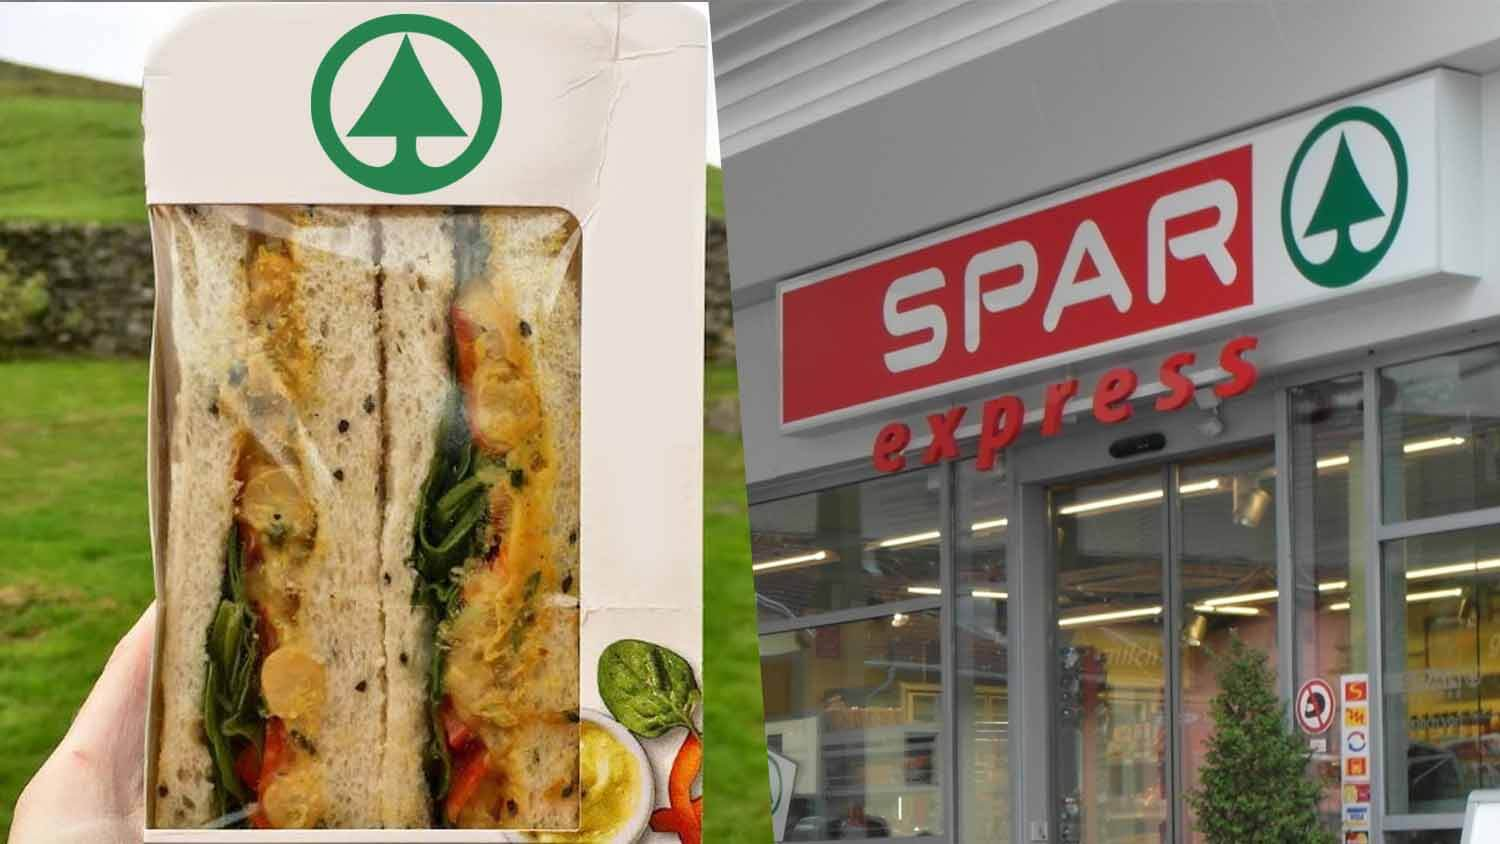 Vegan Grab-and-Go Sandwiches Now at Spar Supermarkets